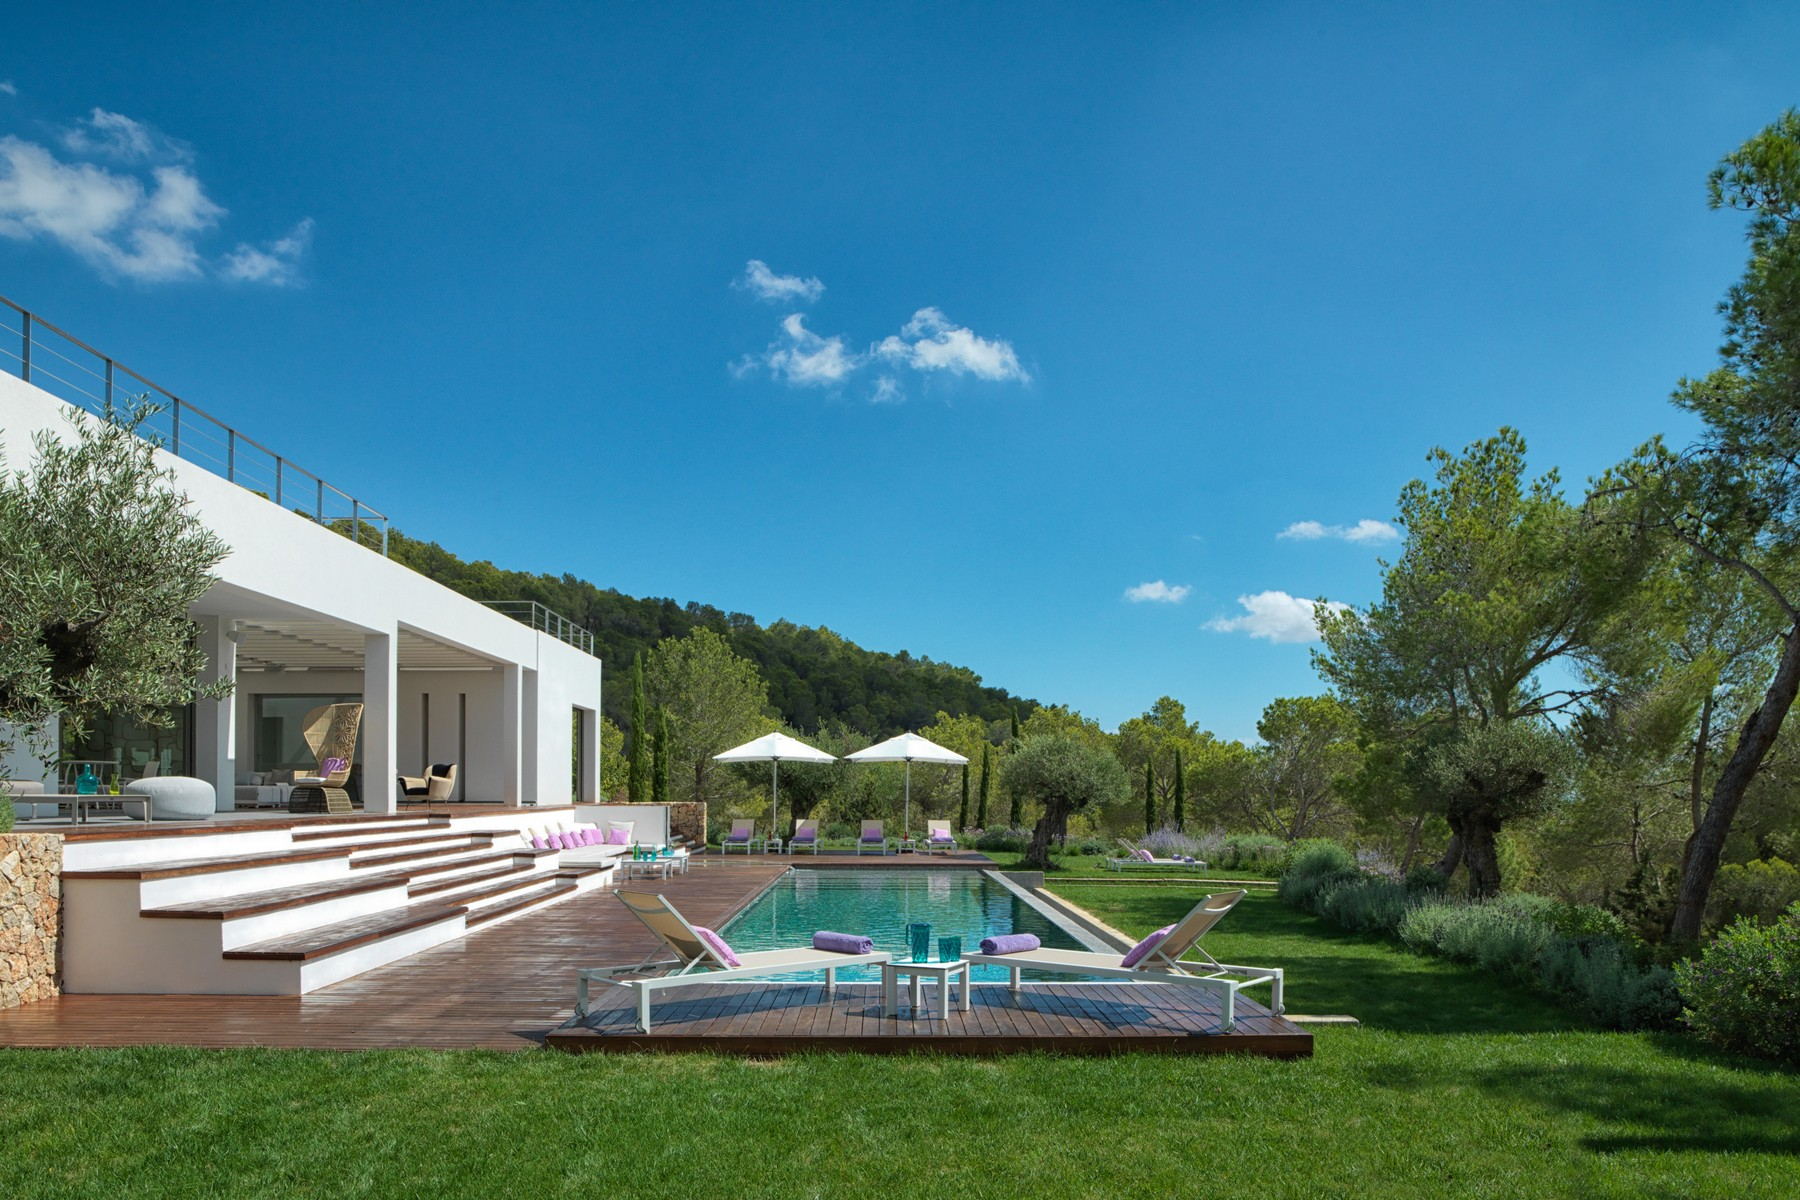 Tek Ailelik Ev için Satış at Designed Private Villa In A Hill Ibiza, Ibiza, 07830 Ispanya